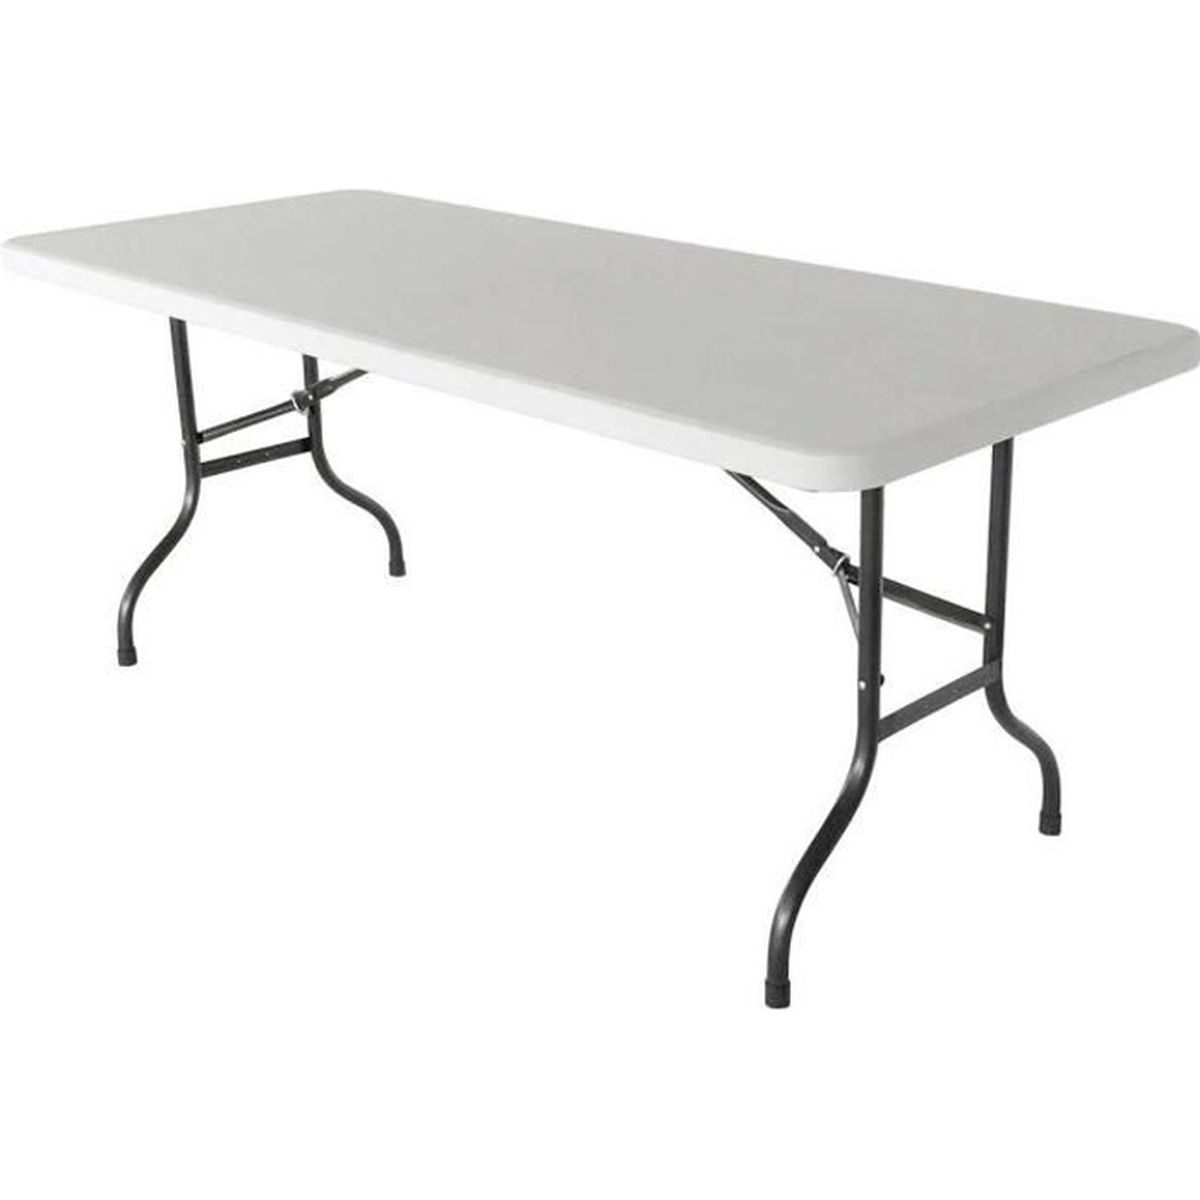 Table pliante d 39 appoint 200 cm table pliable 8 places - Table de bridge pliante ...